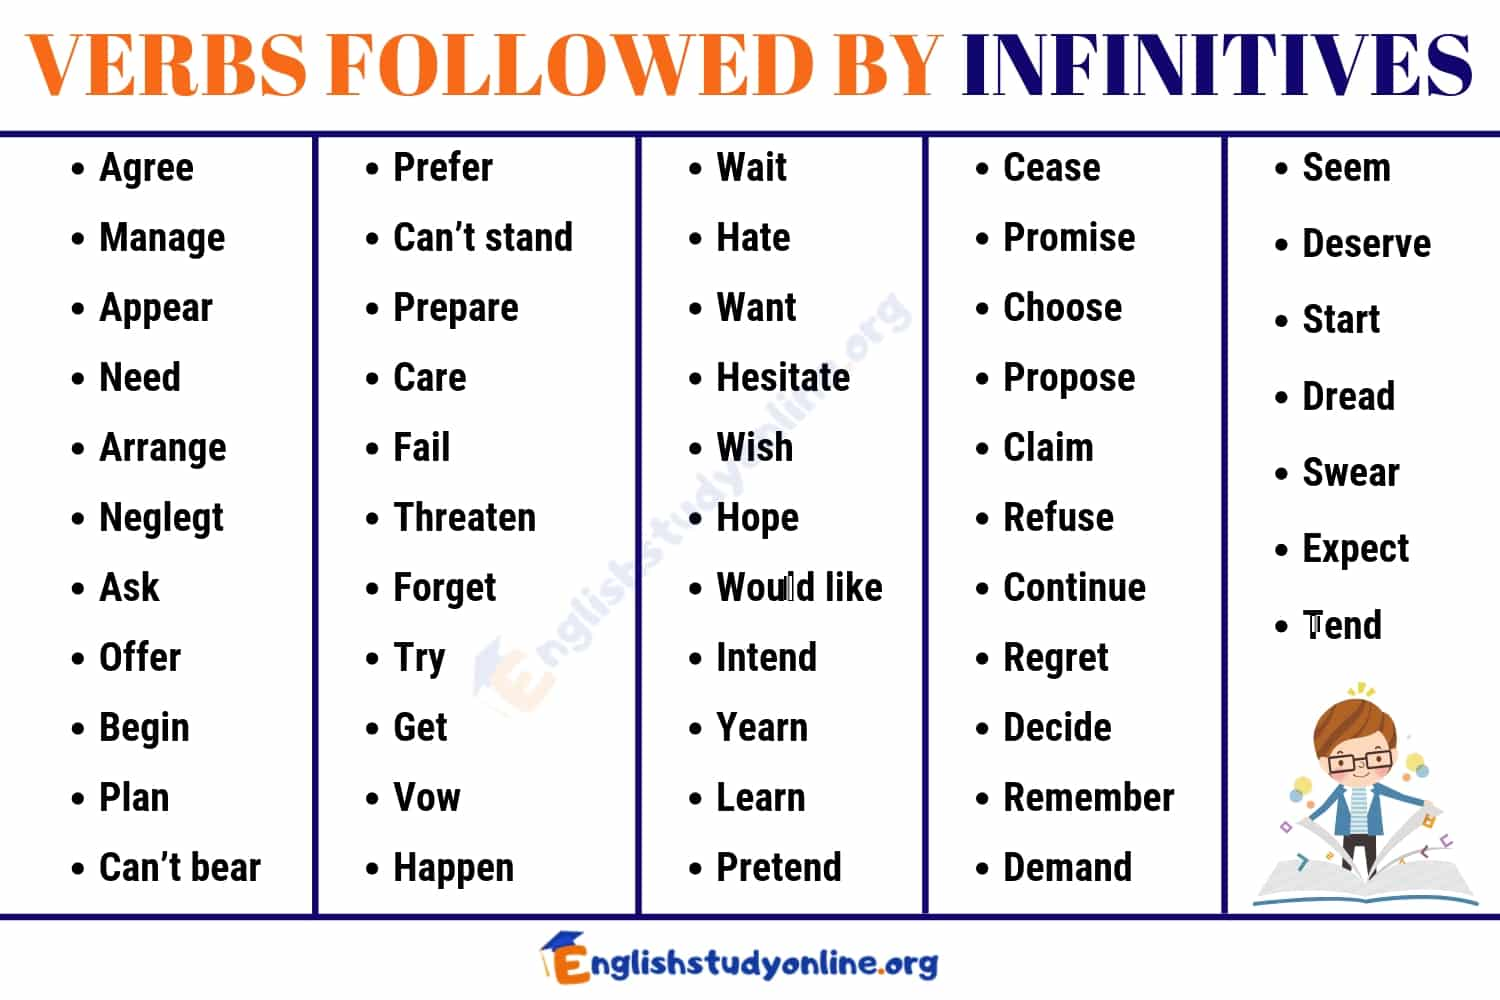 50+ Important Verbs Followed By INFINITIVES in English